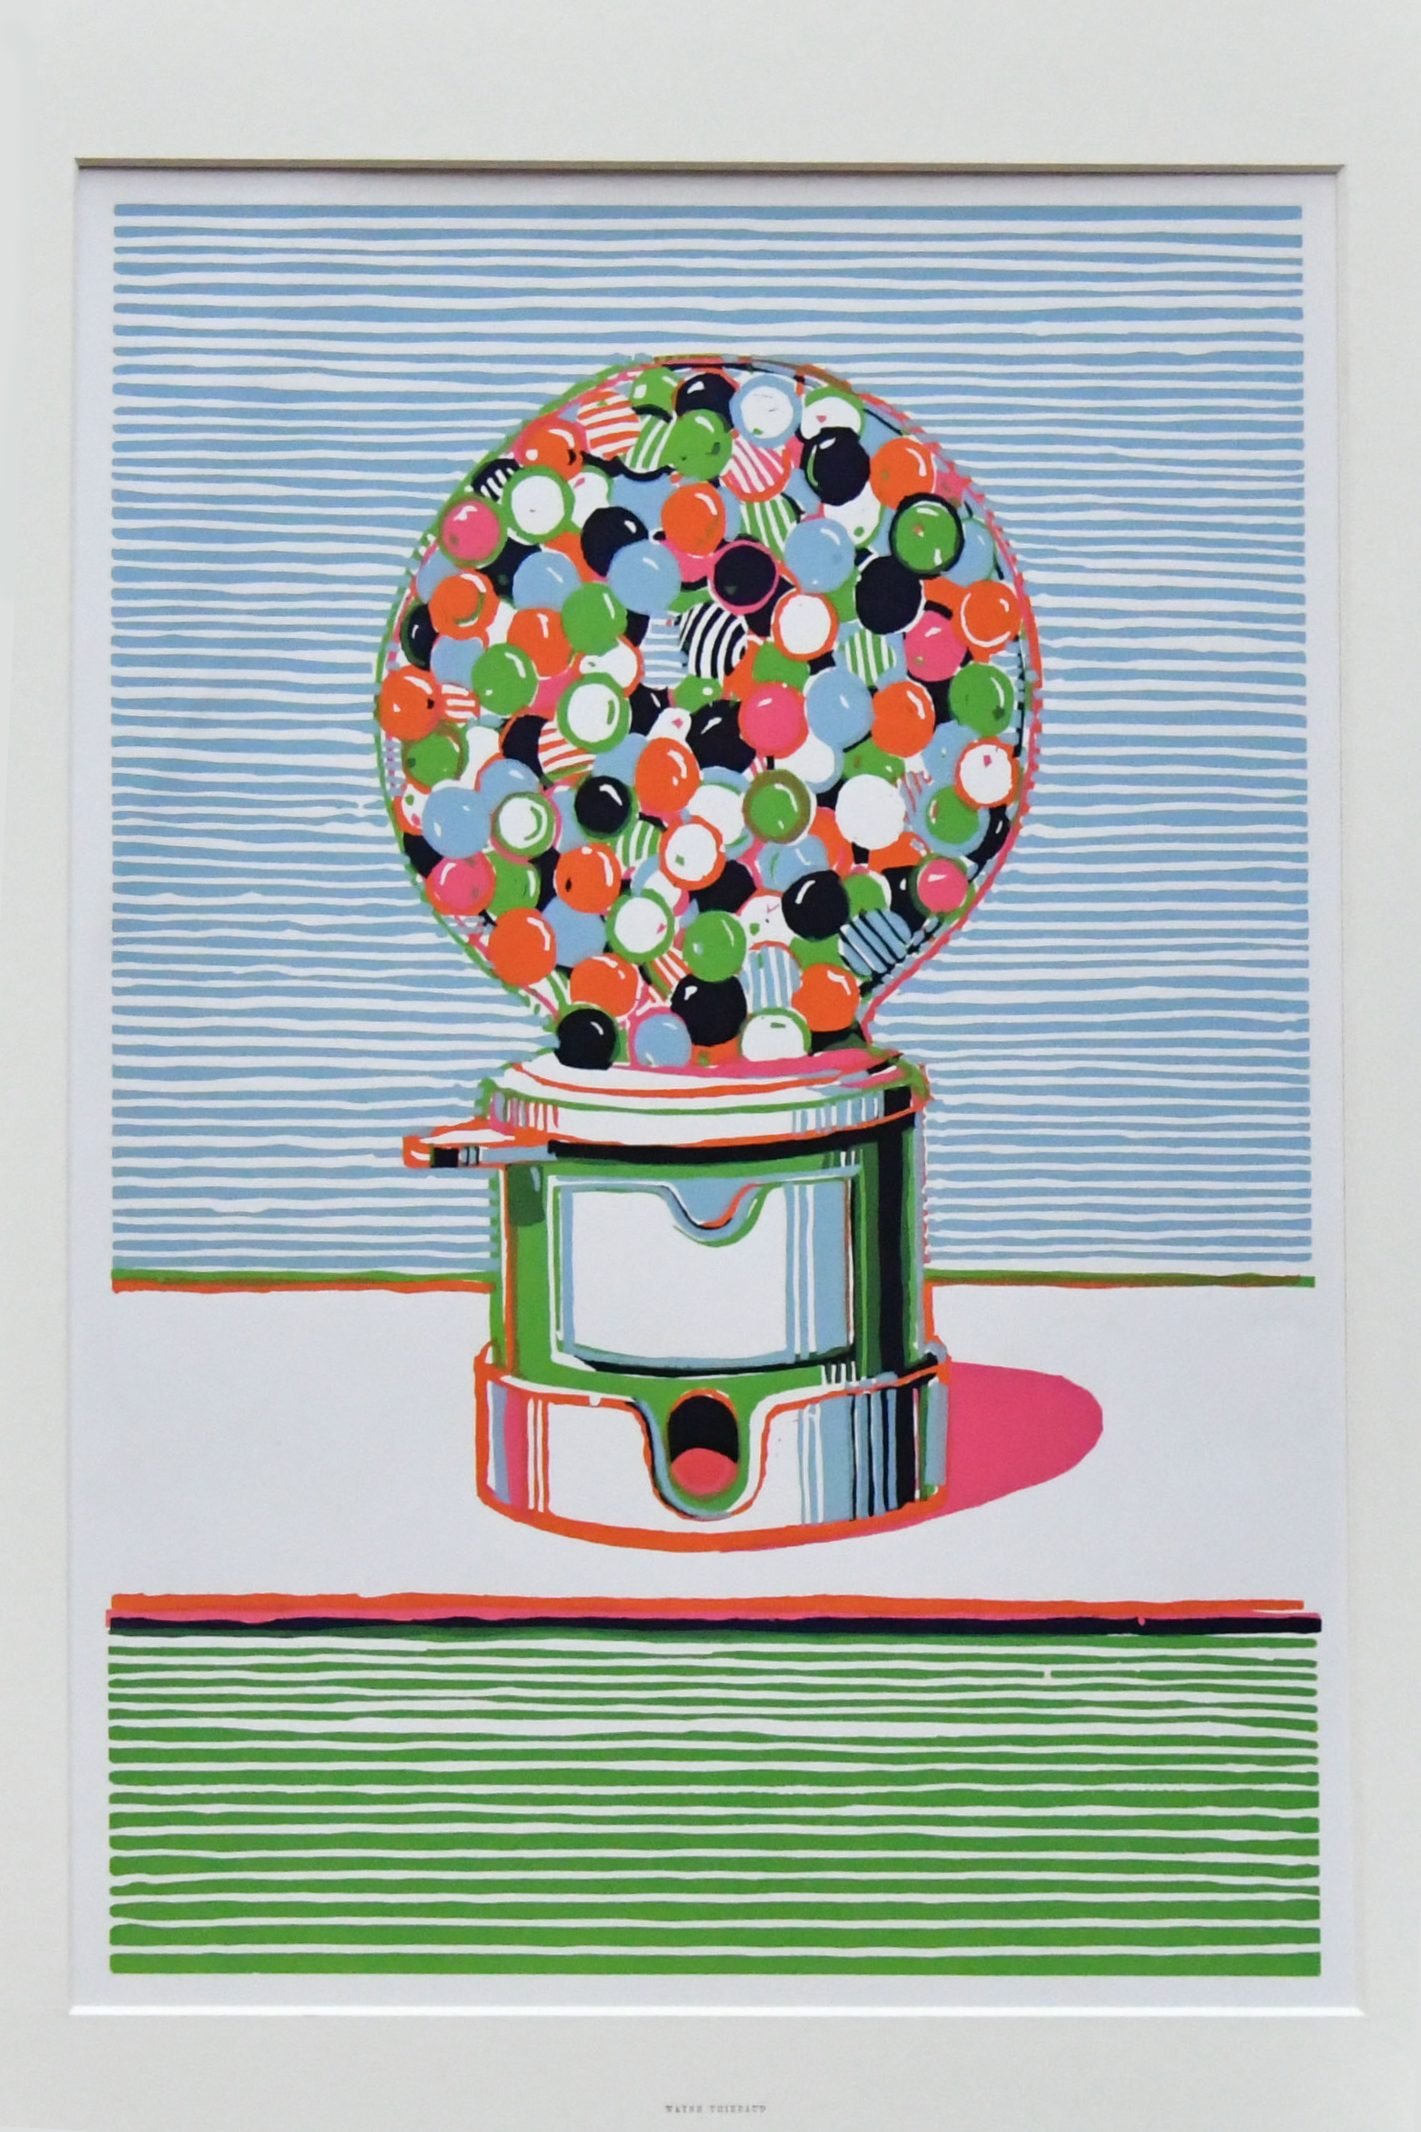 Mandatory Credit: Photo by Nils Jorgensen/Shutterstock (6235891c) Wayne Thiebaud. Gumball Machine. 1970. Catherine Daunt, Project Curator Monument Trust. 'The American Dream' exhibition photocall, The British Museum, London, UK - 12 Oct 2016 Photo call for key works which will be in the British Museum's next major exhibition The American Dream: pop to the present, which opens Spring 2017